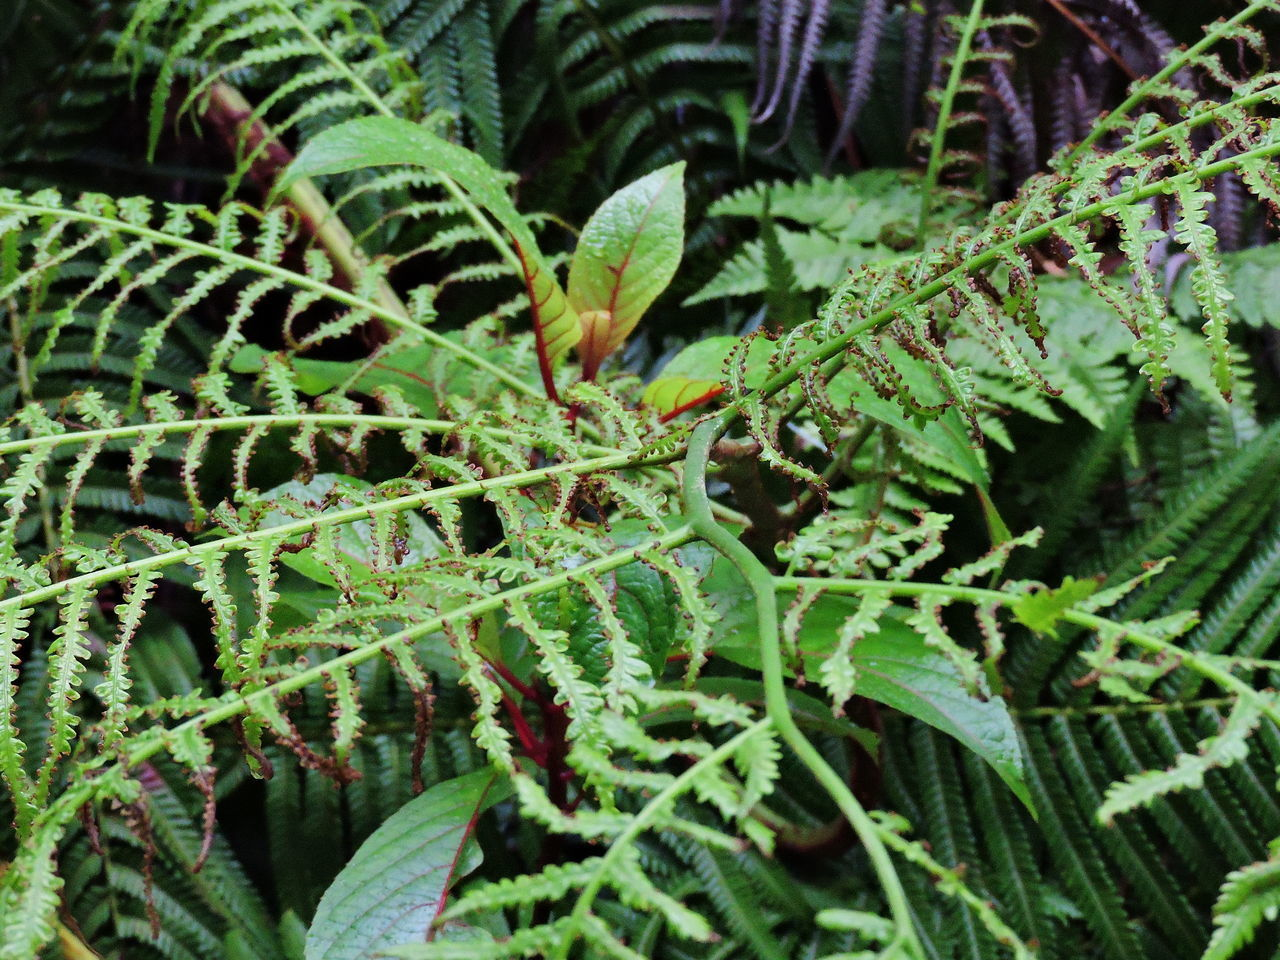 Backgrounds Beauty In Nature Close-up Day Fern Fragility Freshness Full Frame Green Color Growth Leaf Nature No People Outdoors Plant